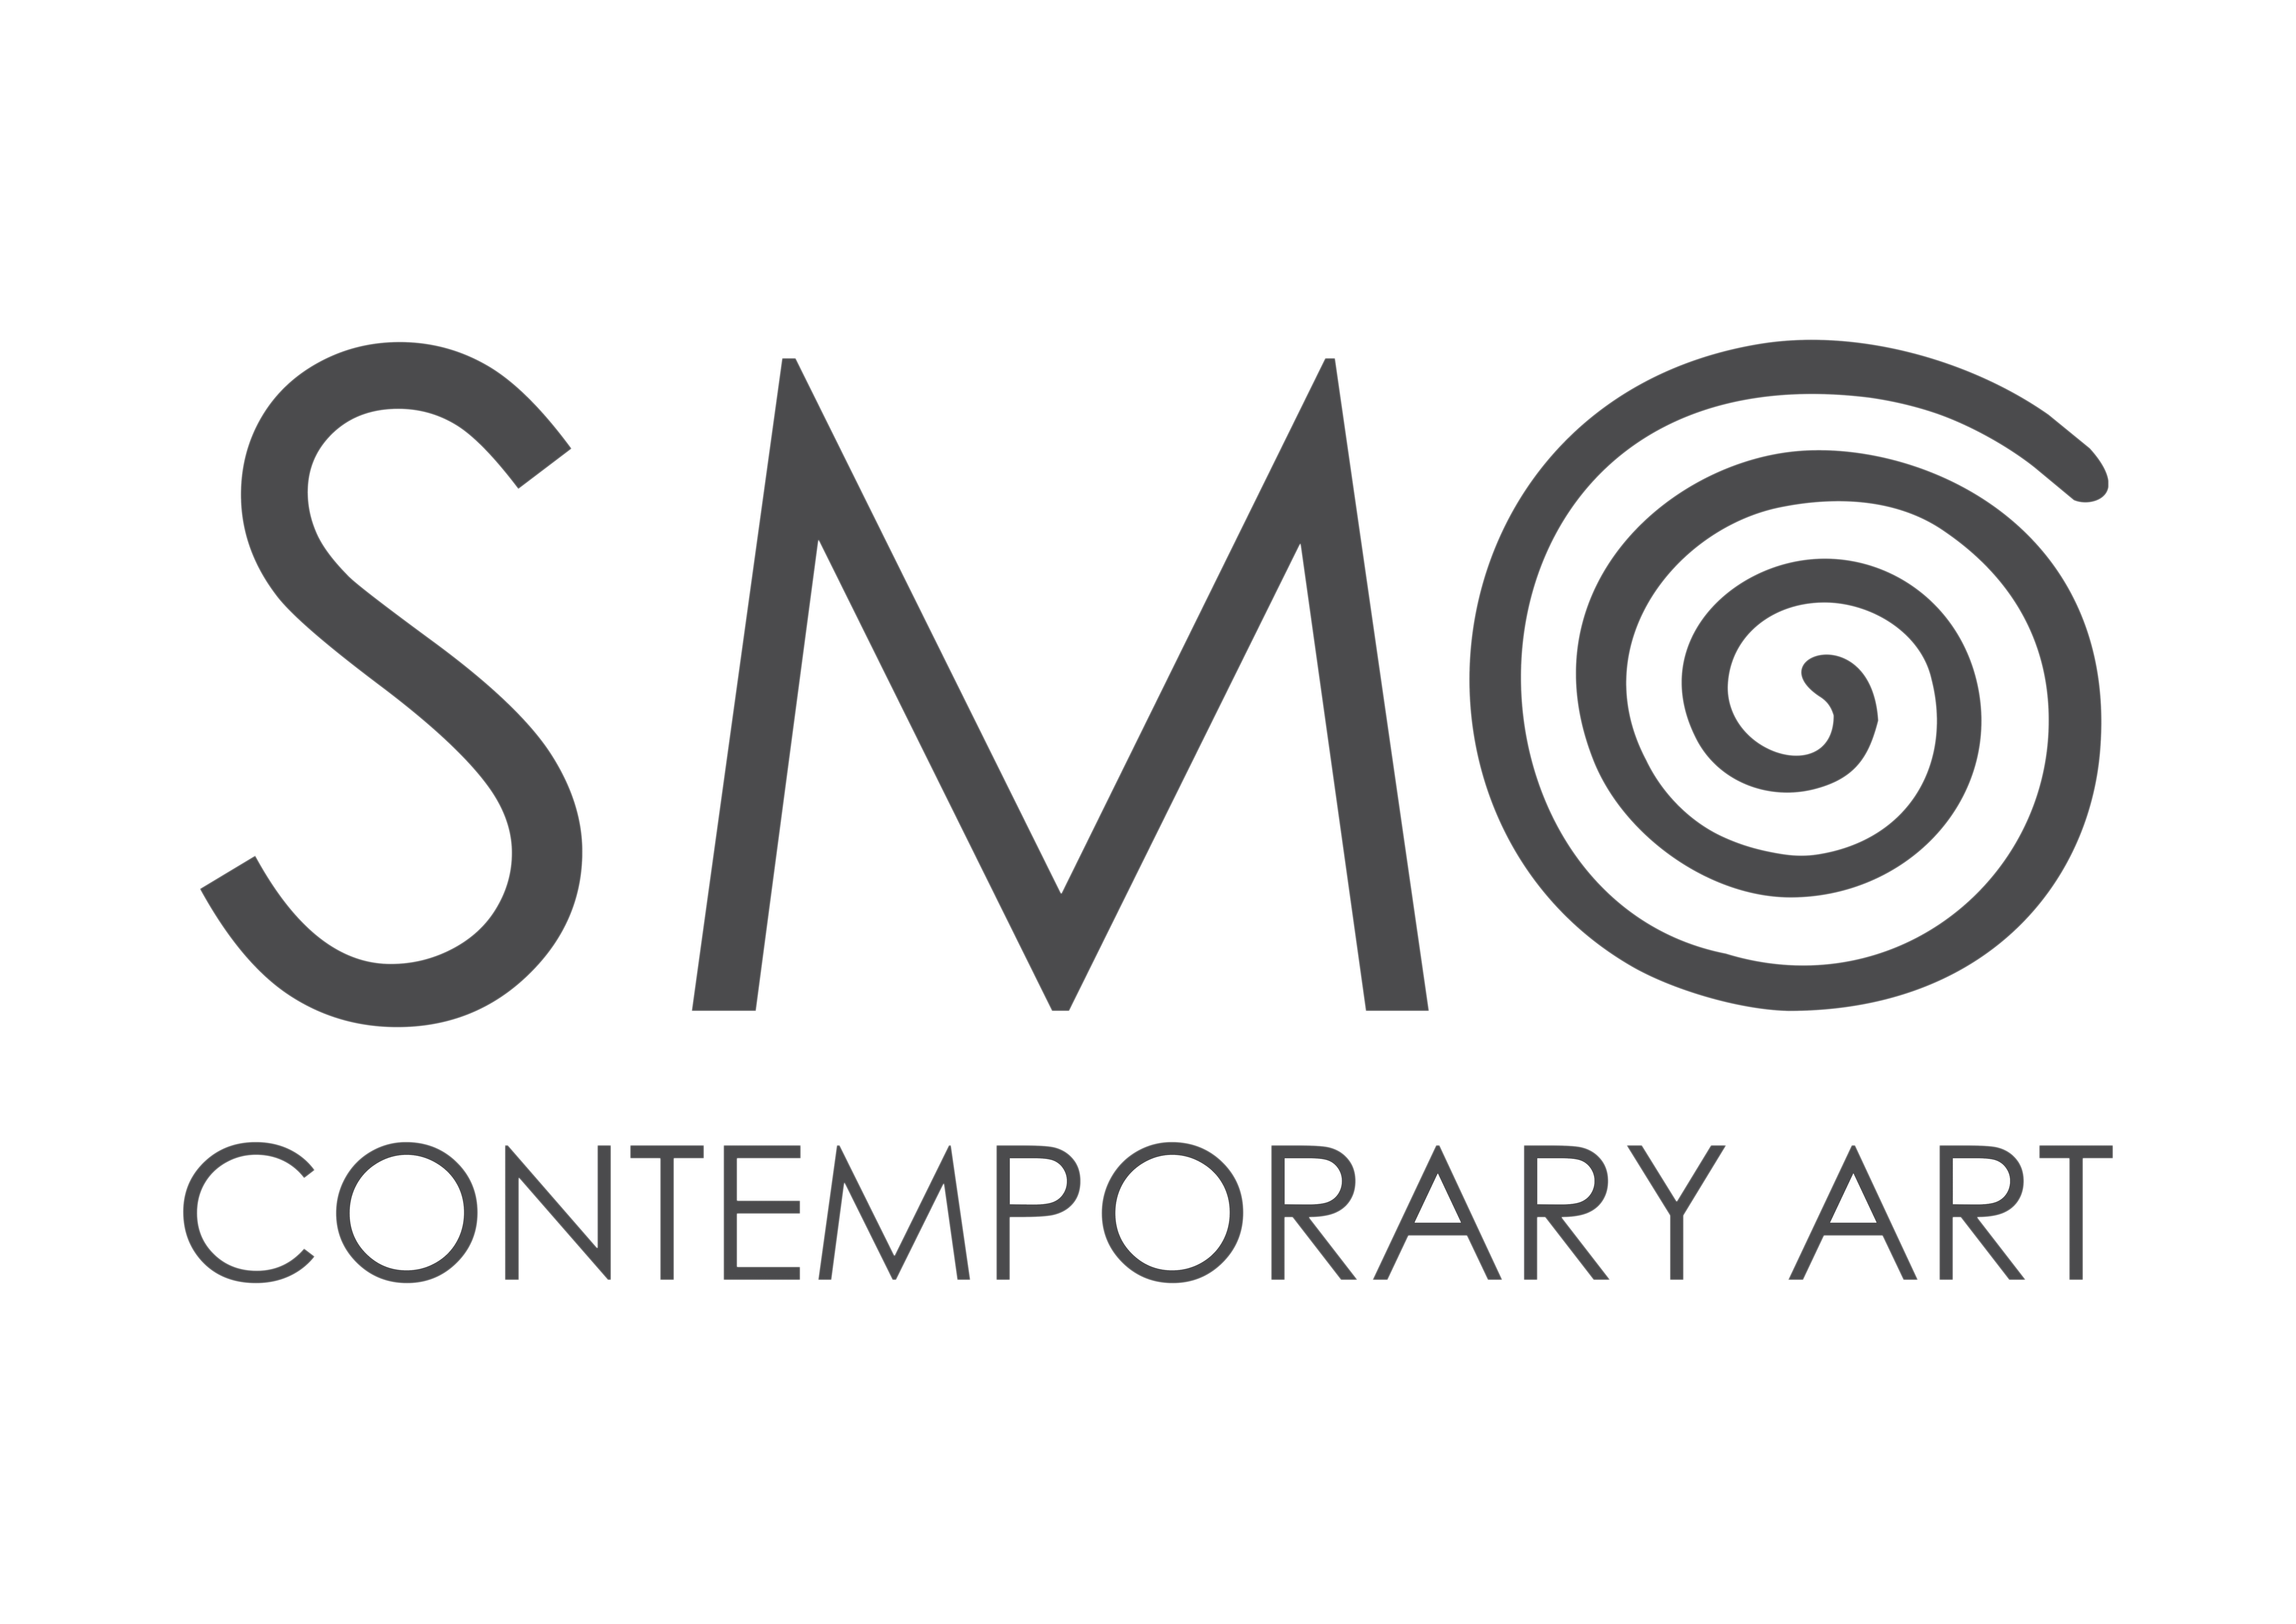 SMO Contemporary Art company logo